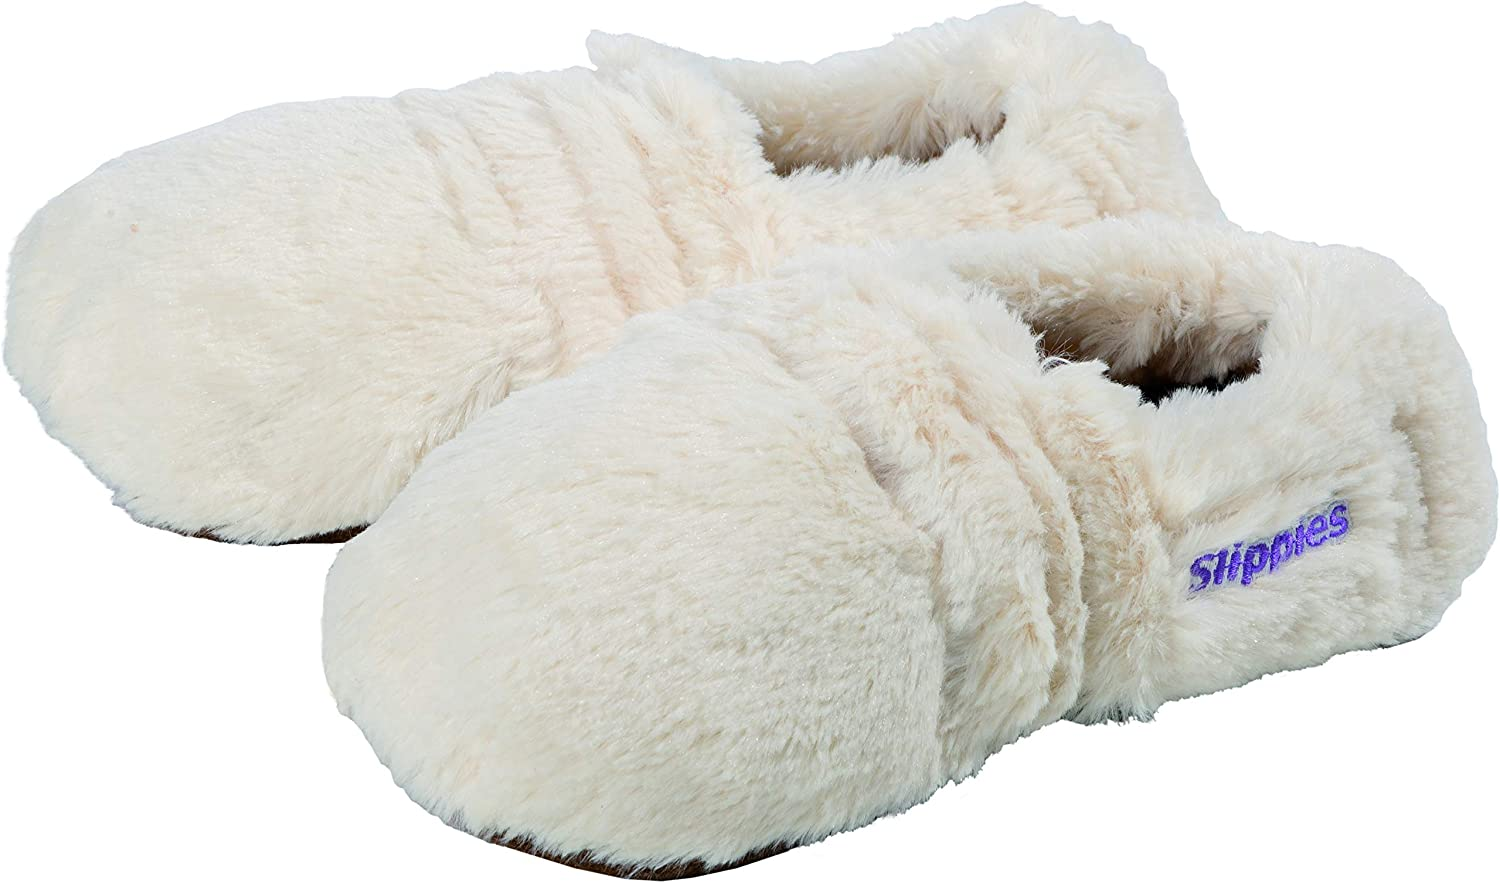 Fußwärmer Lavendel-Korn-Mix Slippies Creme Plush Größe M (37-40 ...